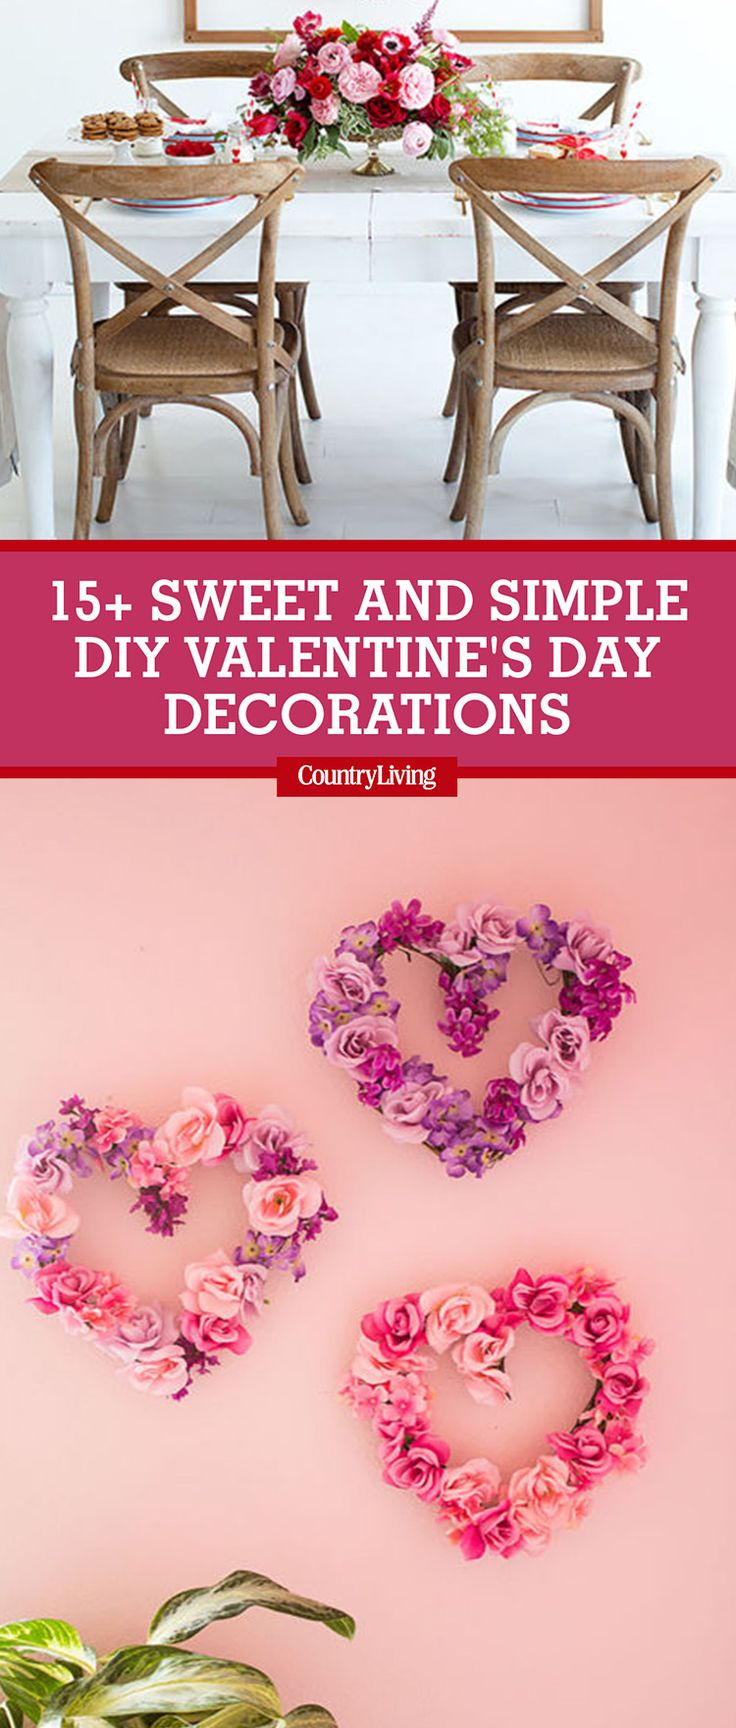 18 Sweet and Simple DIY Valentineu0027s Day